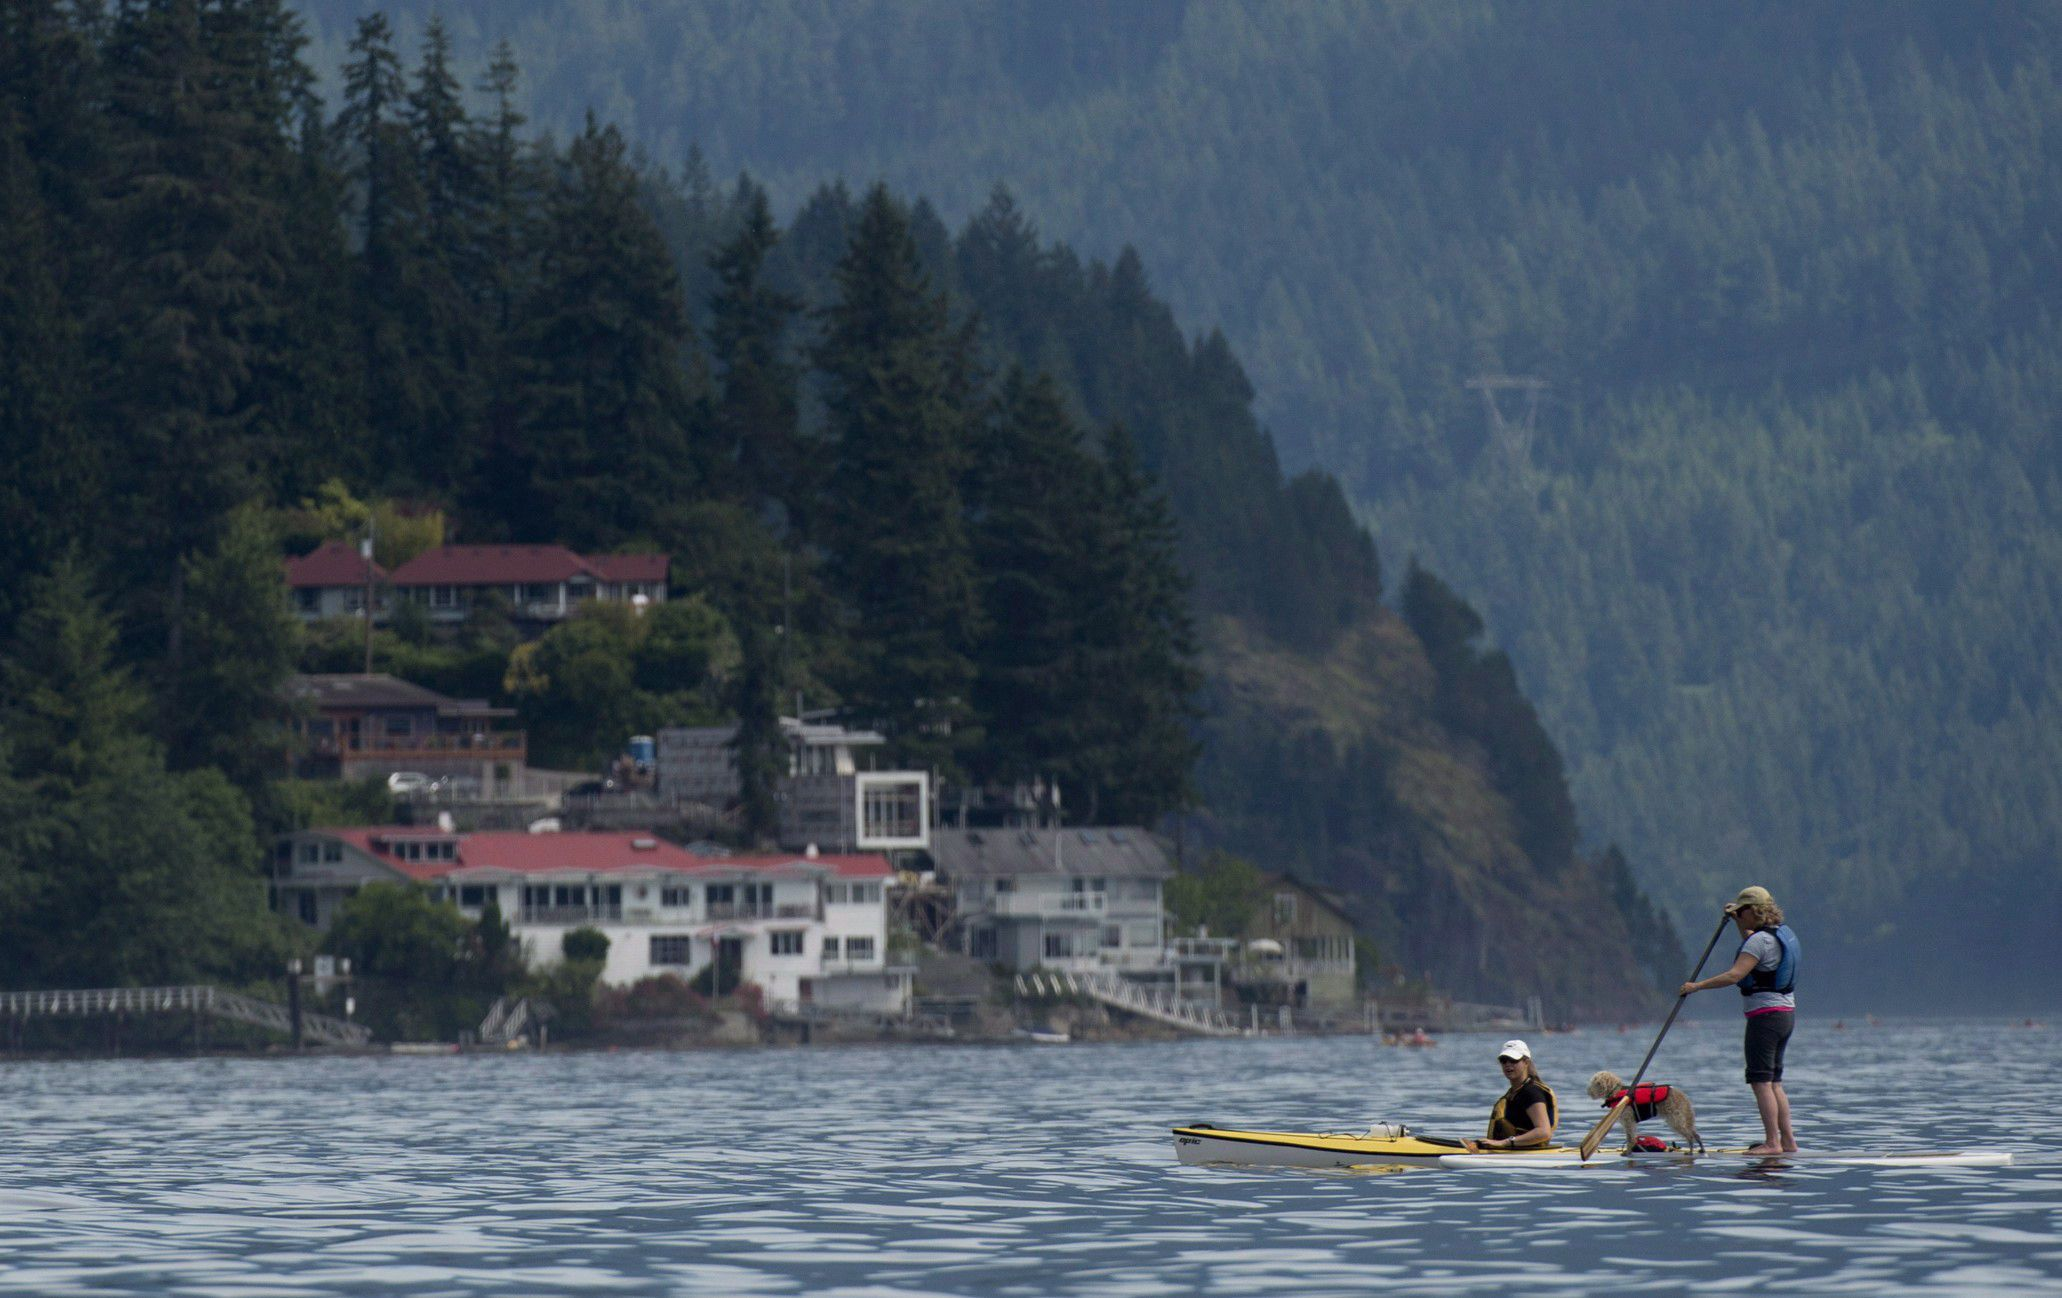 Cottage owners lose battle with B.C. Supreme Court to list properties for short-term rental